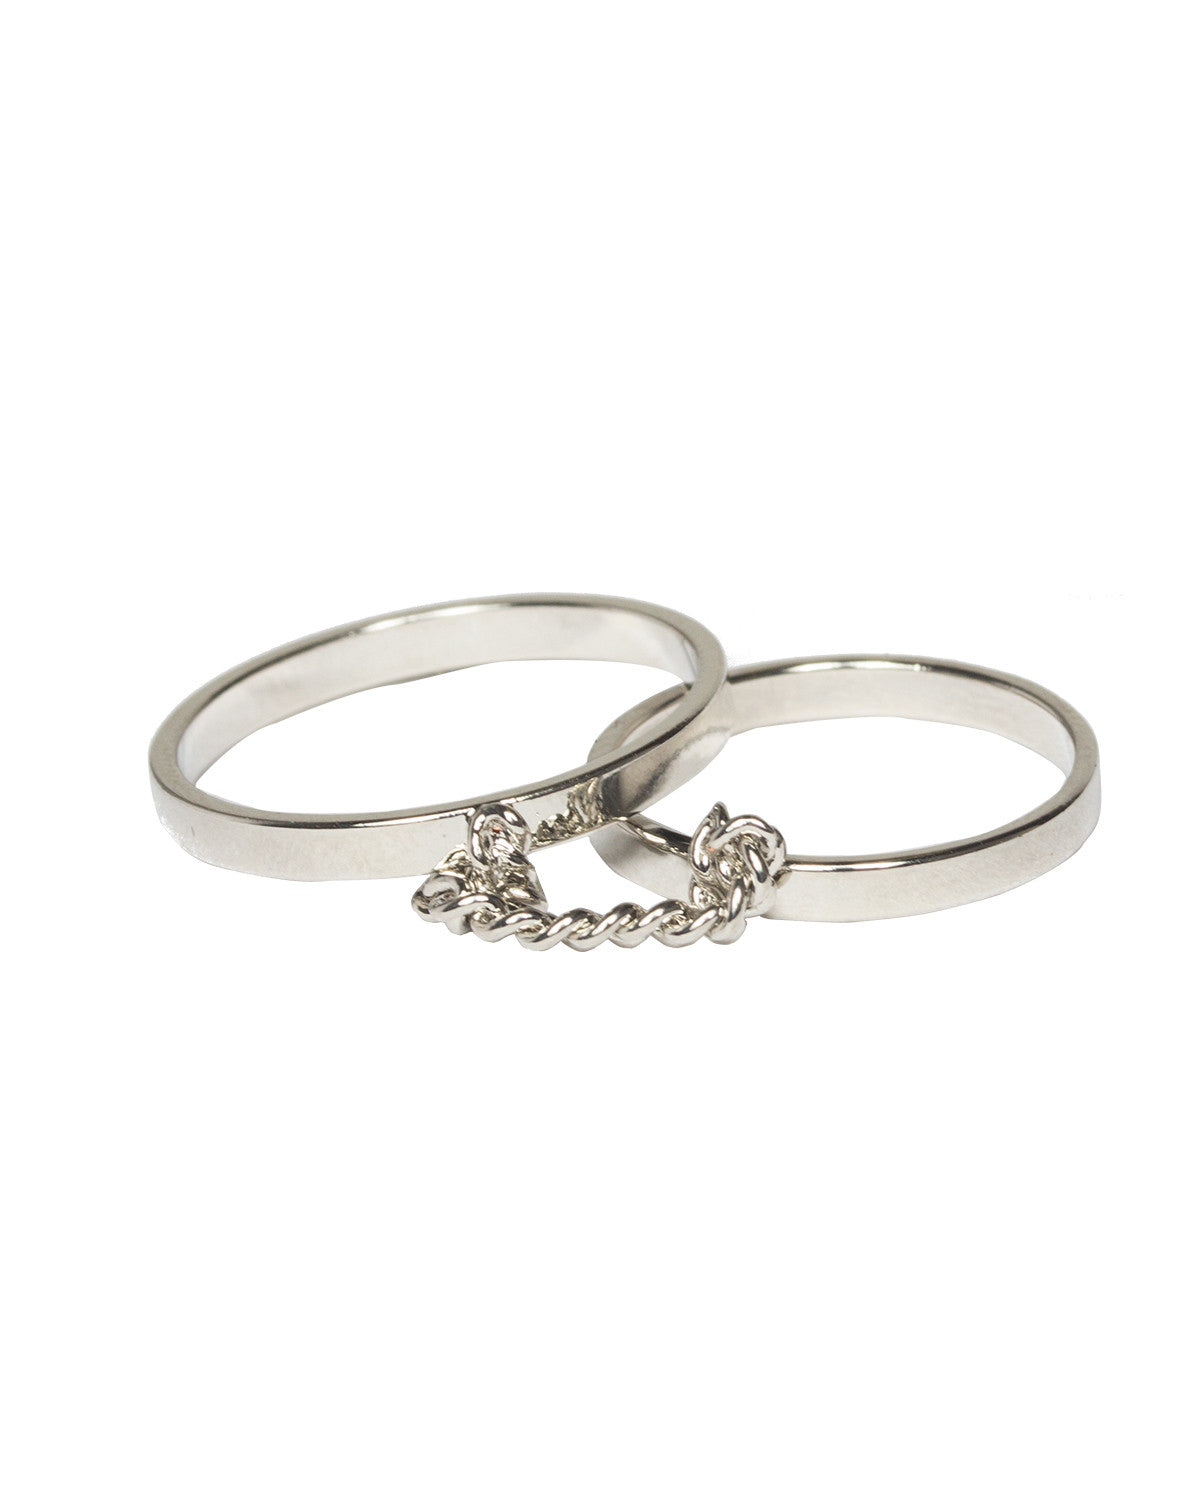 Banded Chain Double Ring